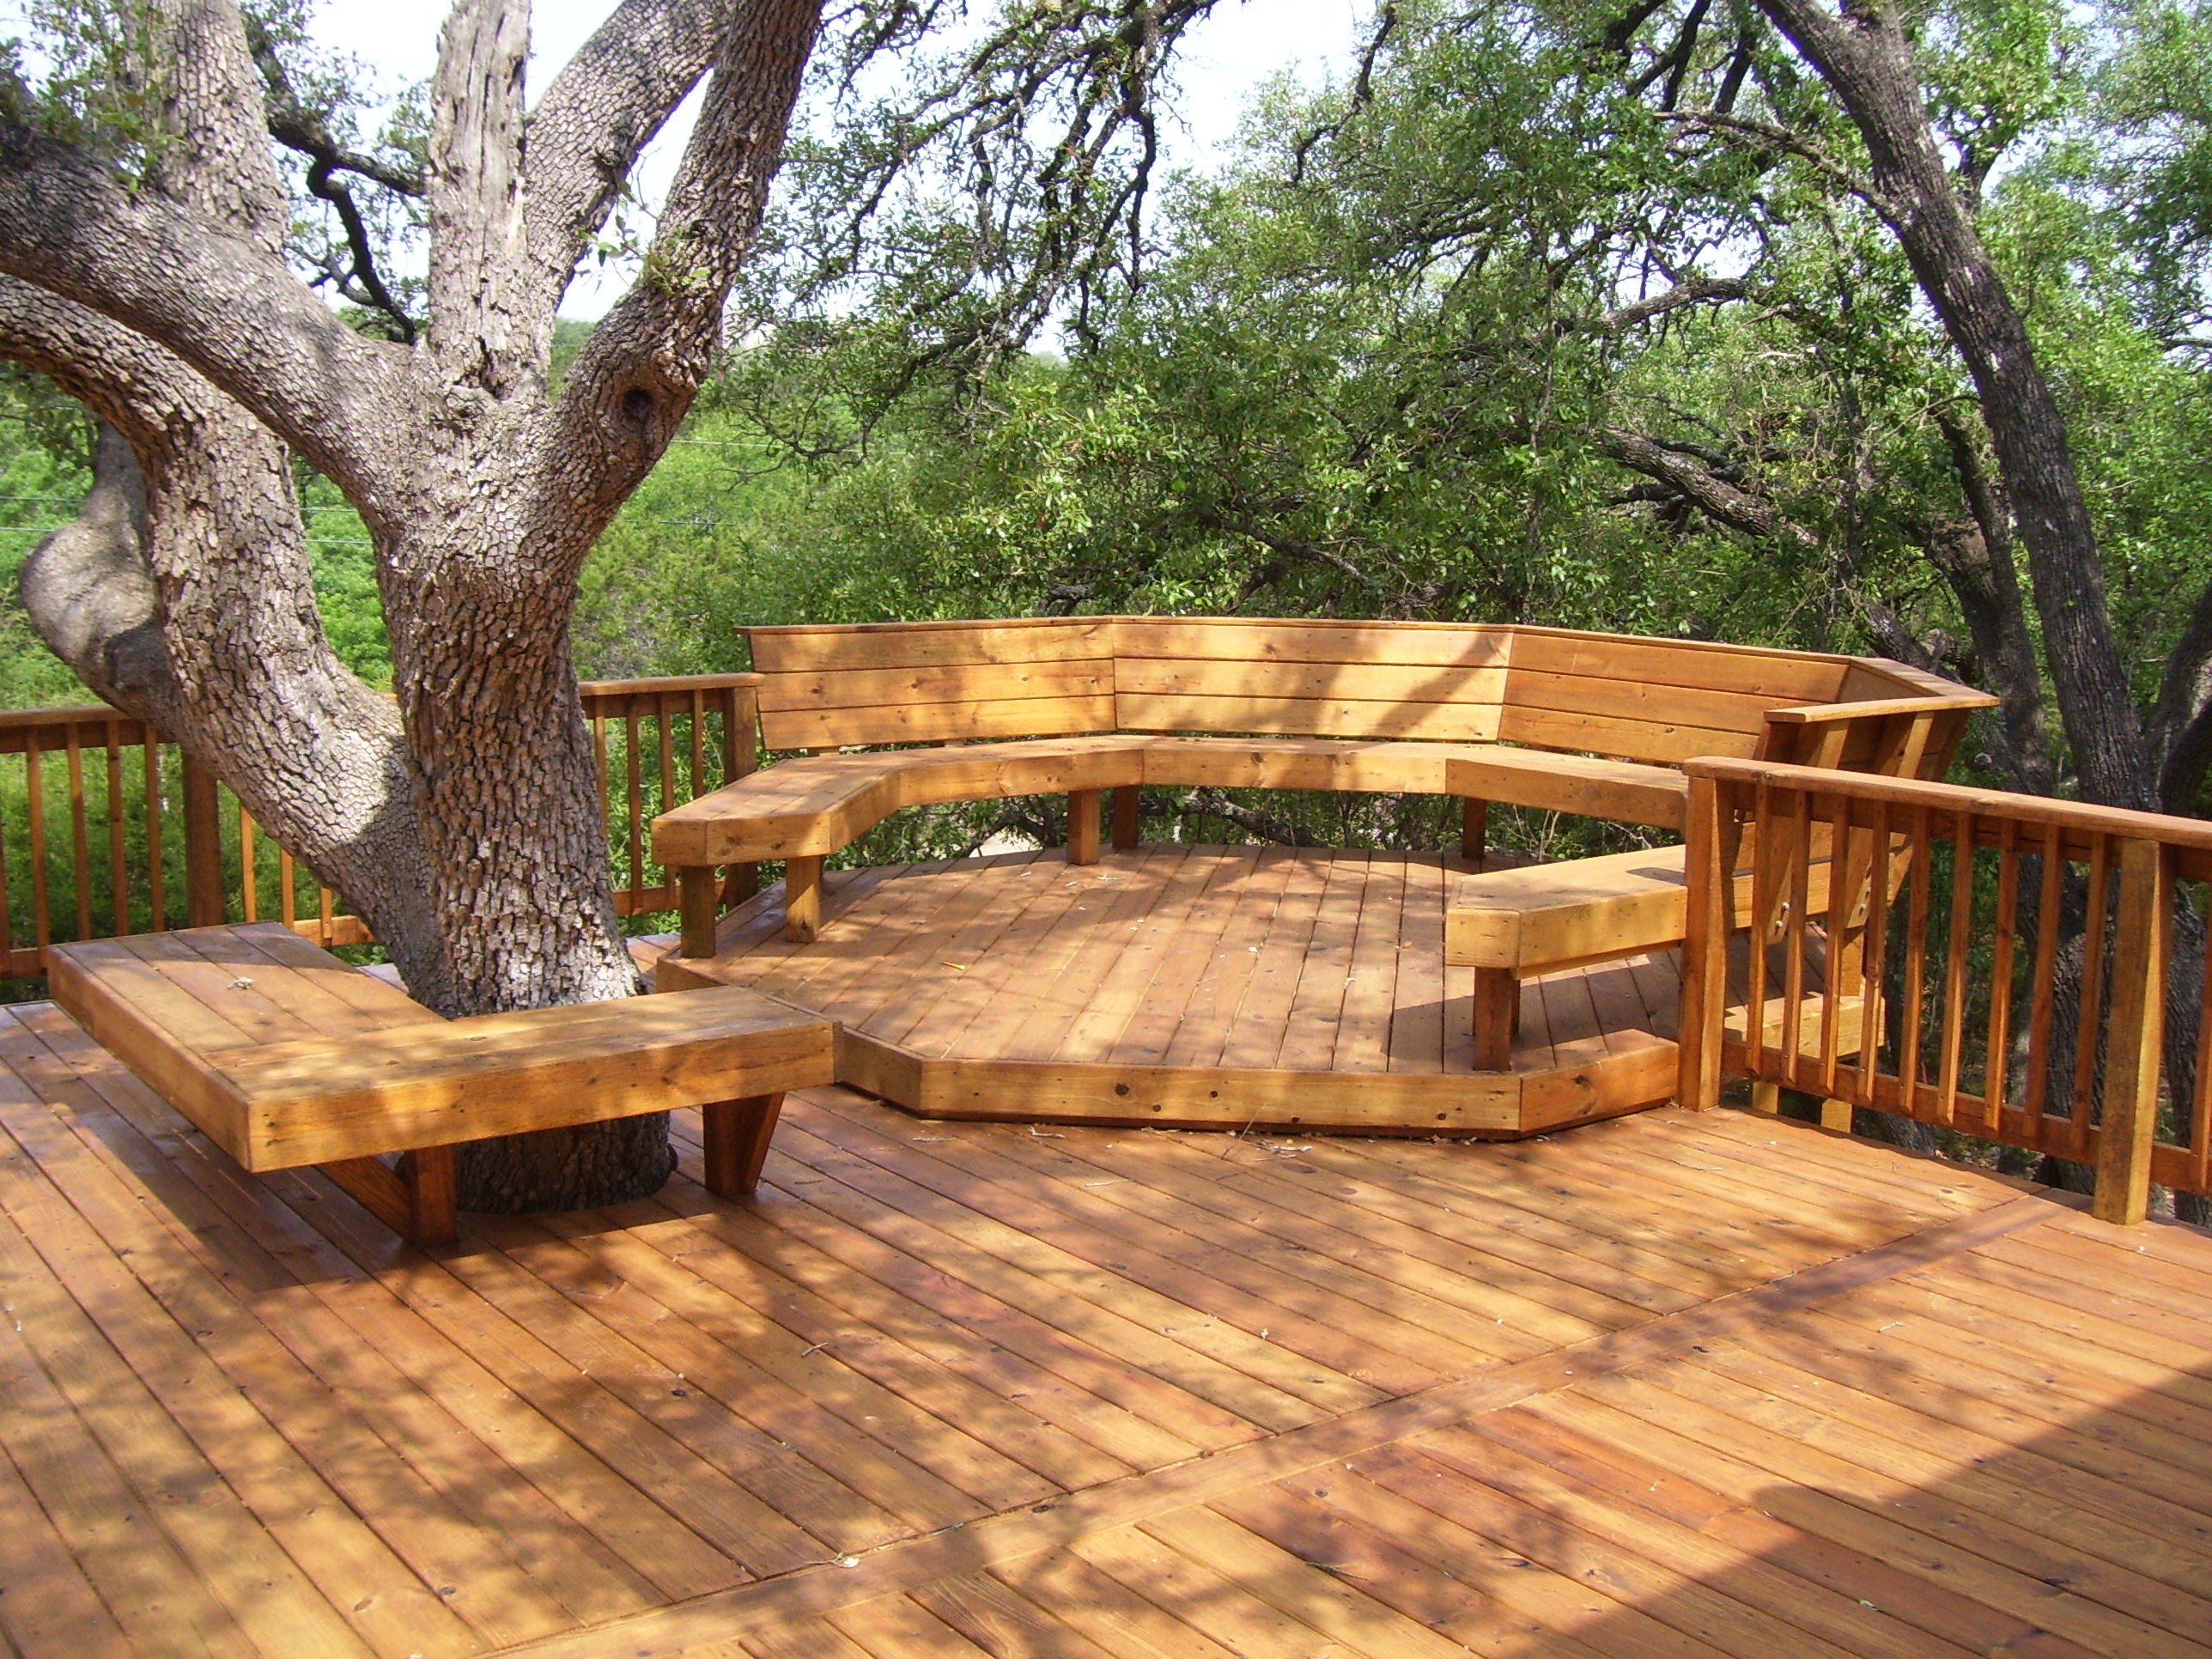 Modern Outside Decks For Outdoor Lounge: Big Leavy Trees Round Bench Cool Outside Decks Ideas